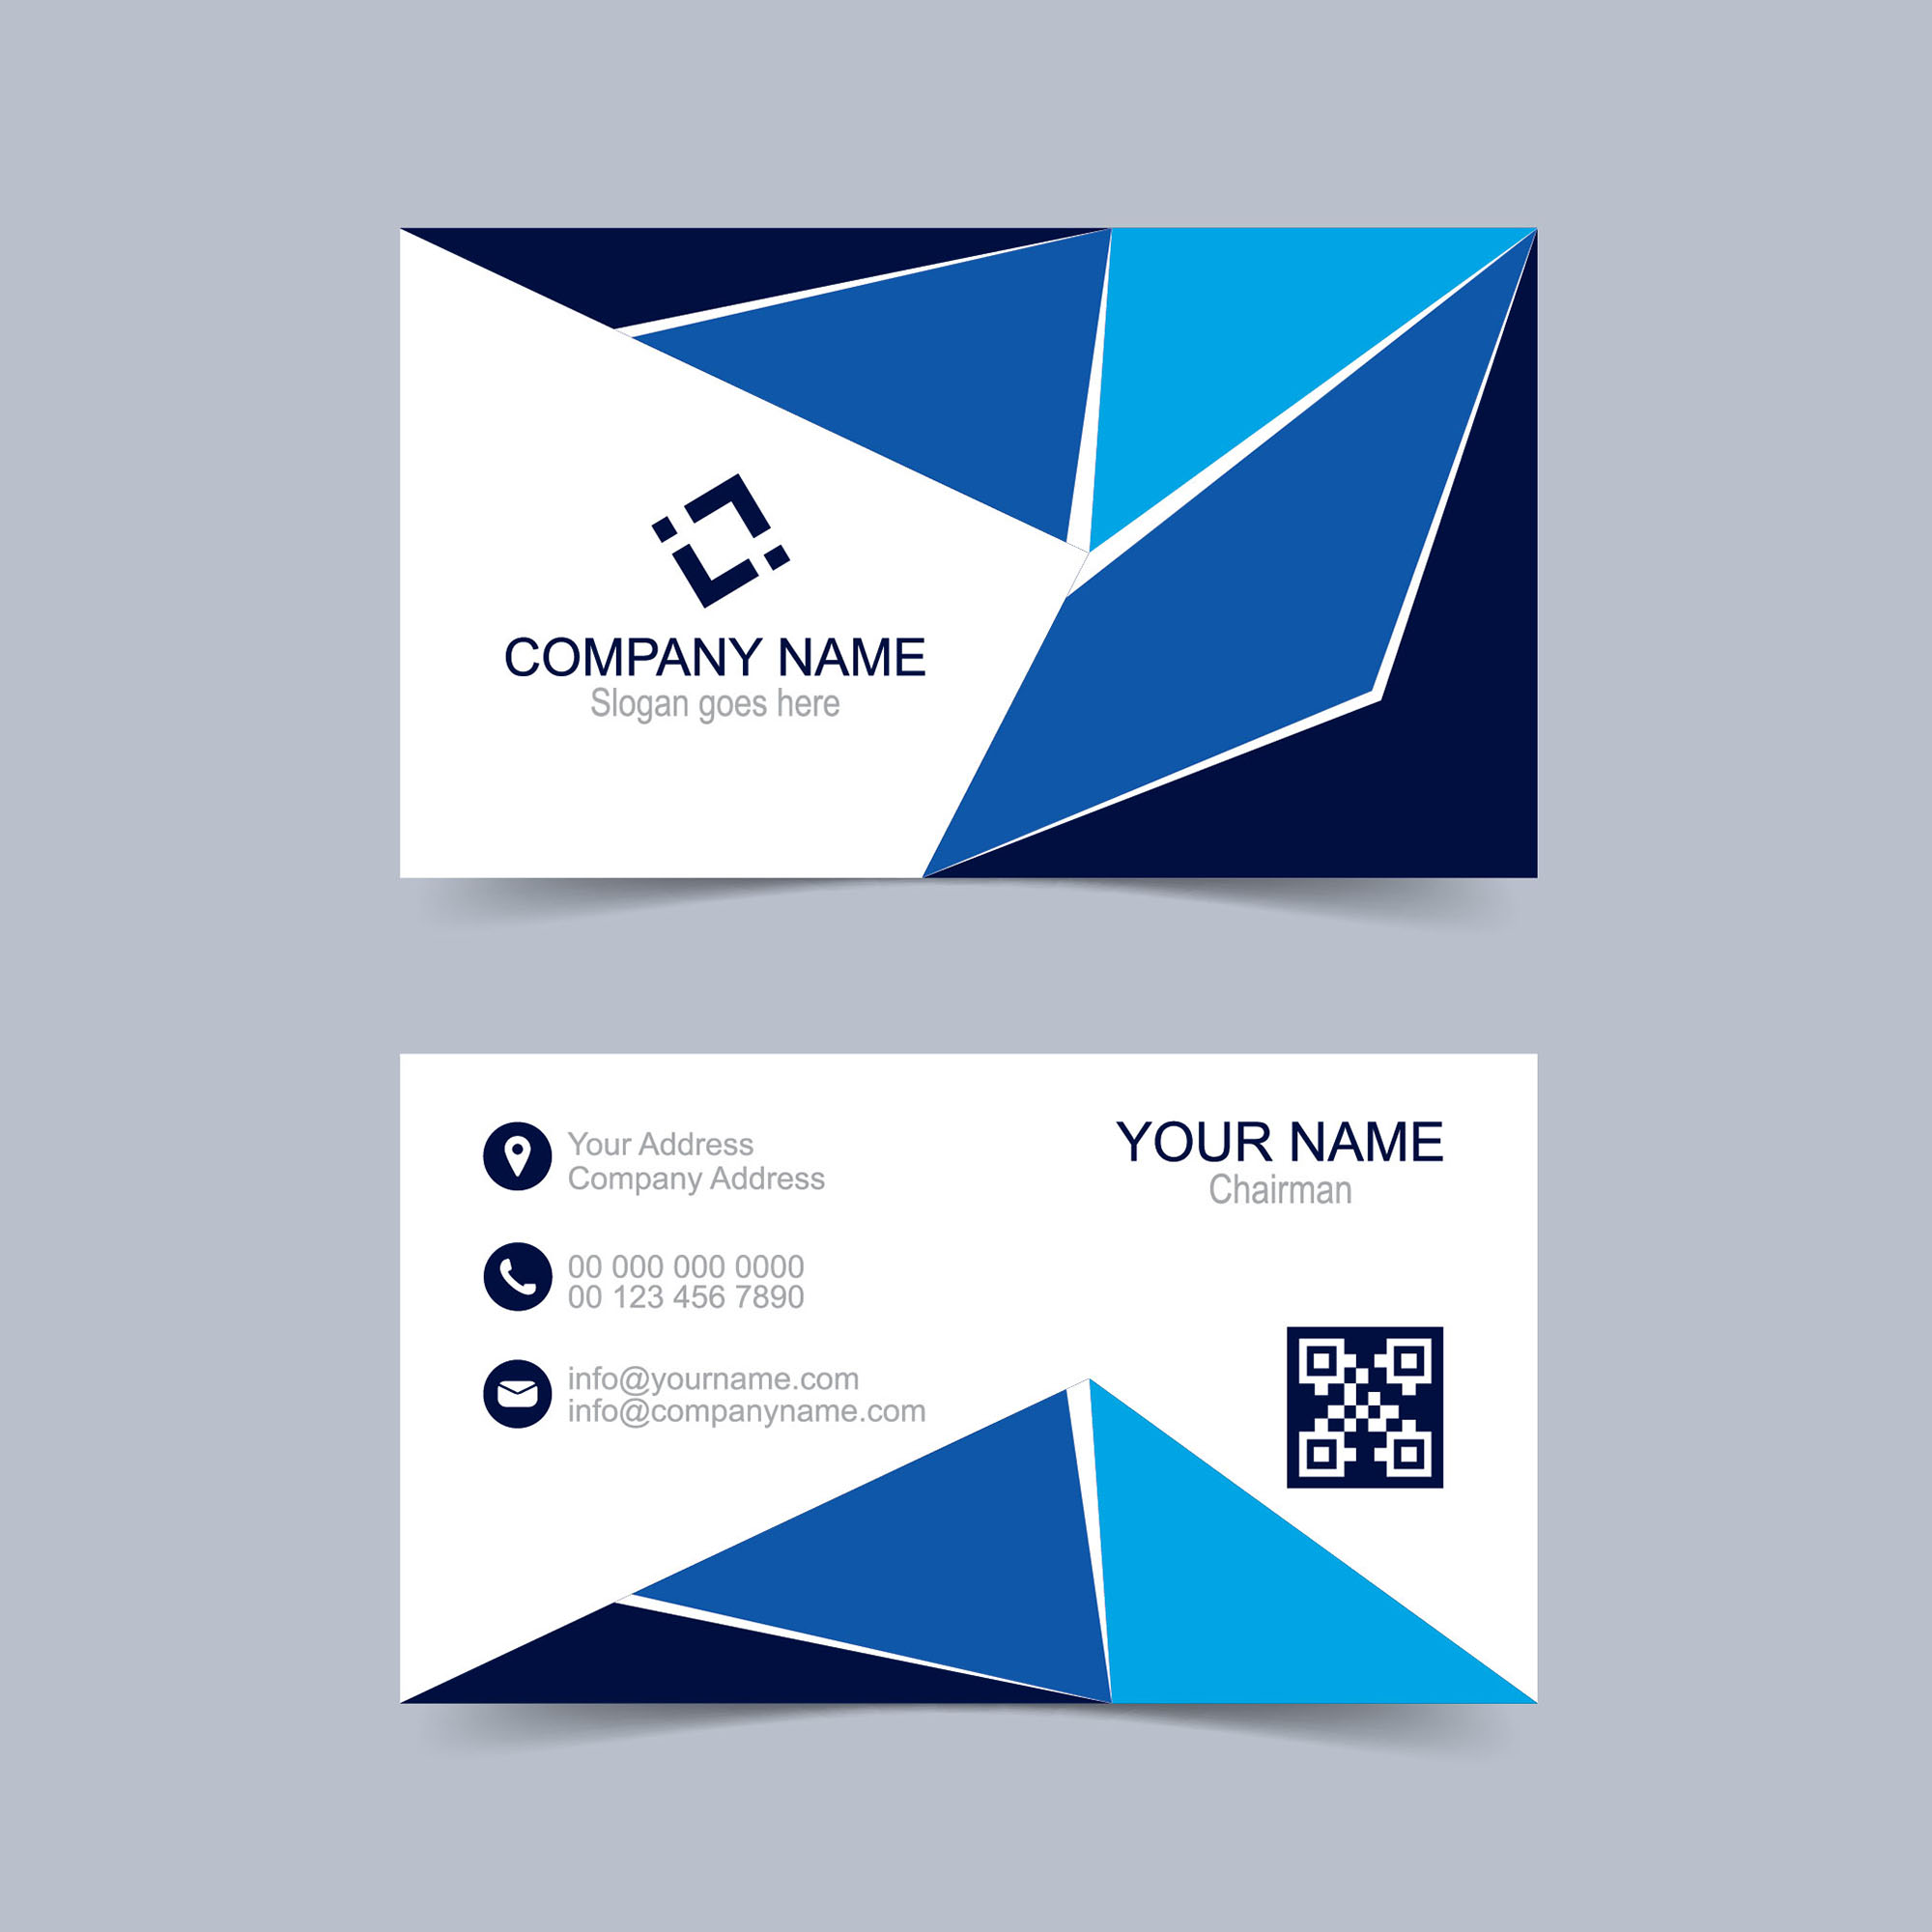 Creative business card design free download wisxi business card business cards business card design business card template design templates cheaphphosting Images